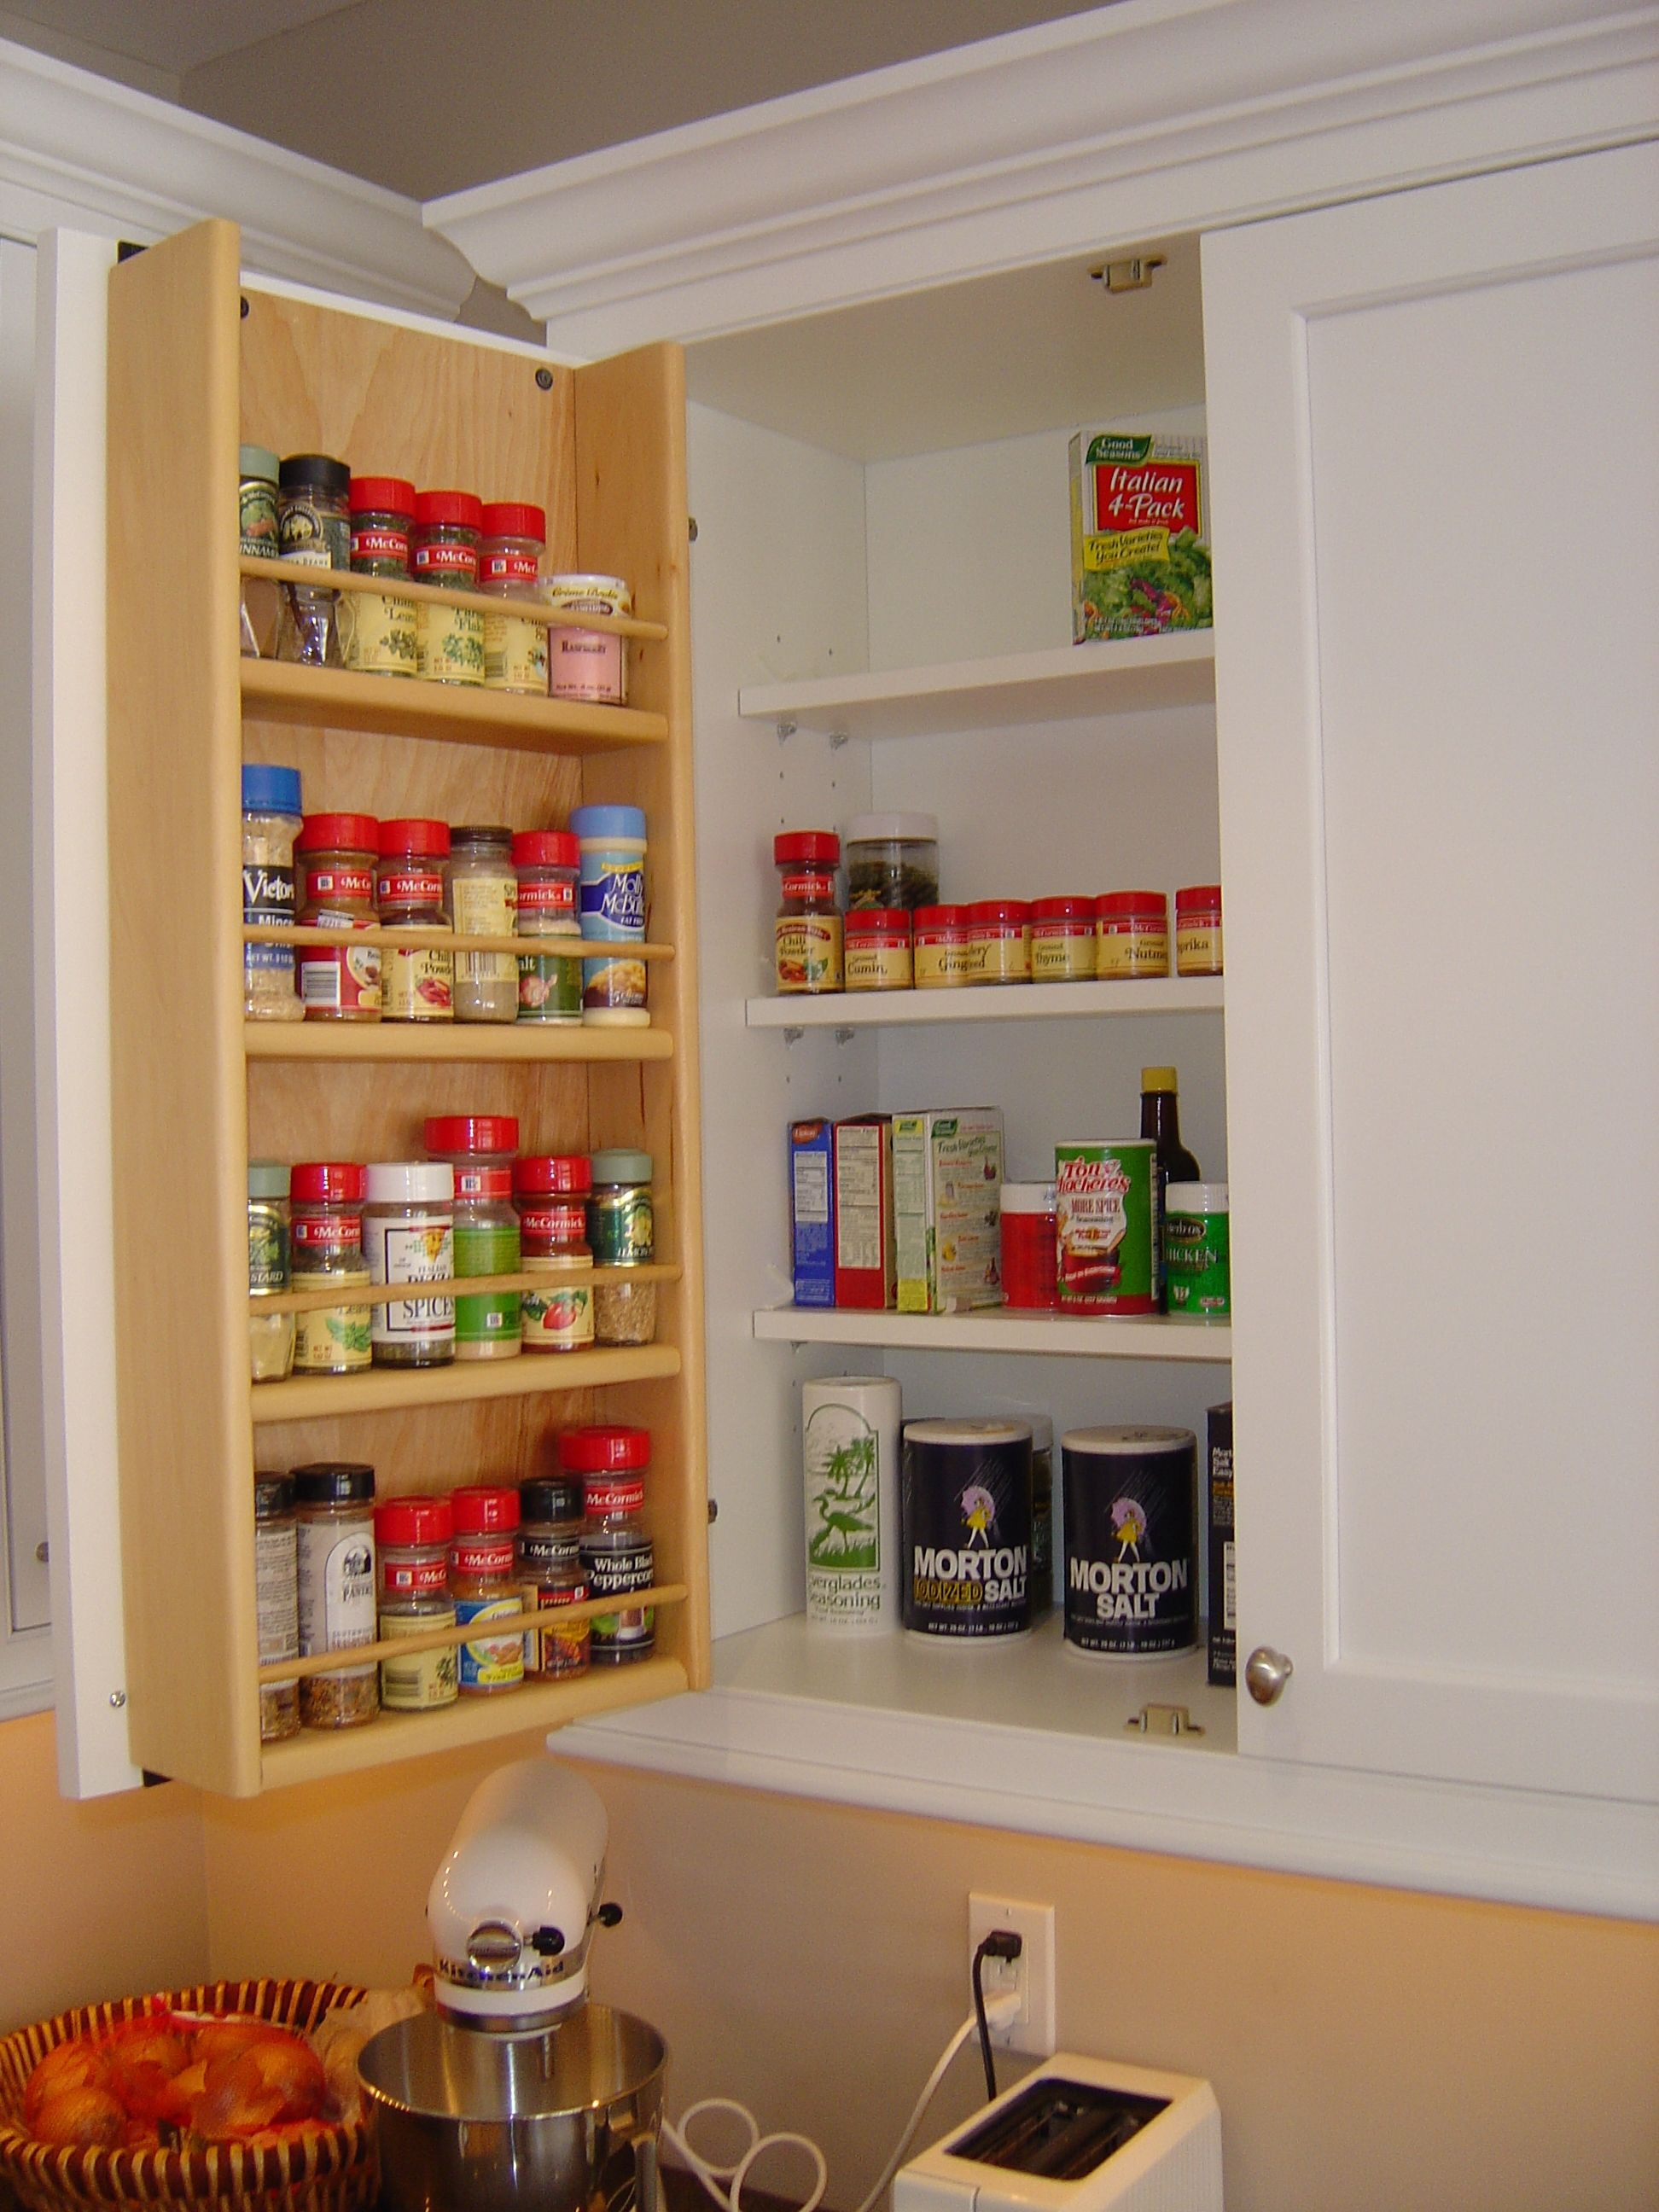 Spice Cabinet with Doors Unique Sliding Spice Rack for Nice Kitchen Cabinet Design Pull Out